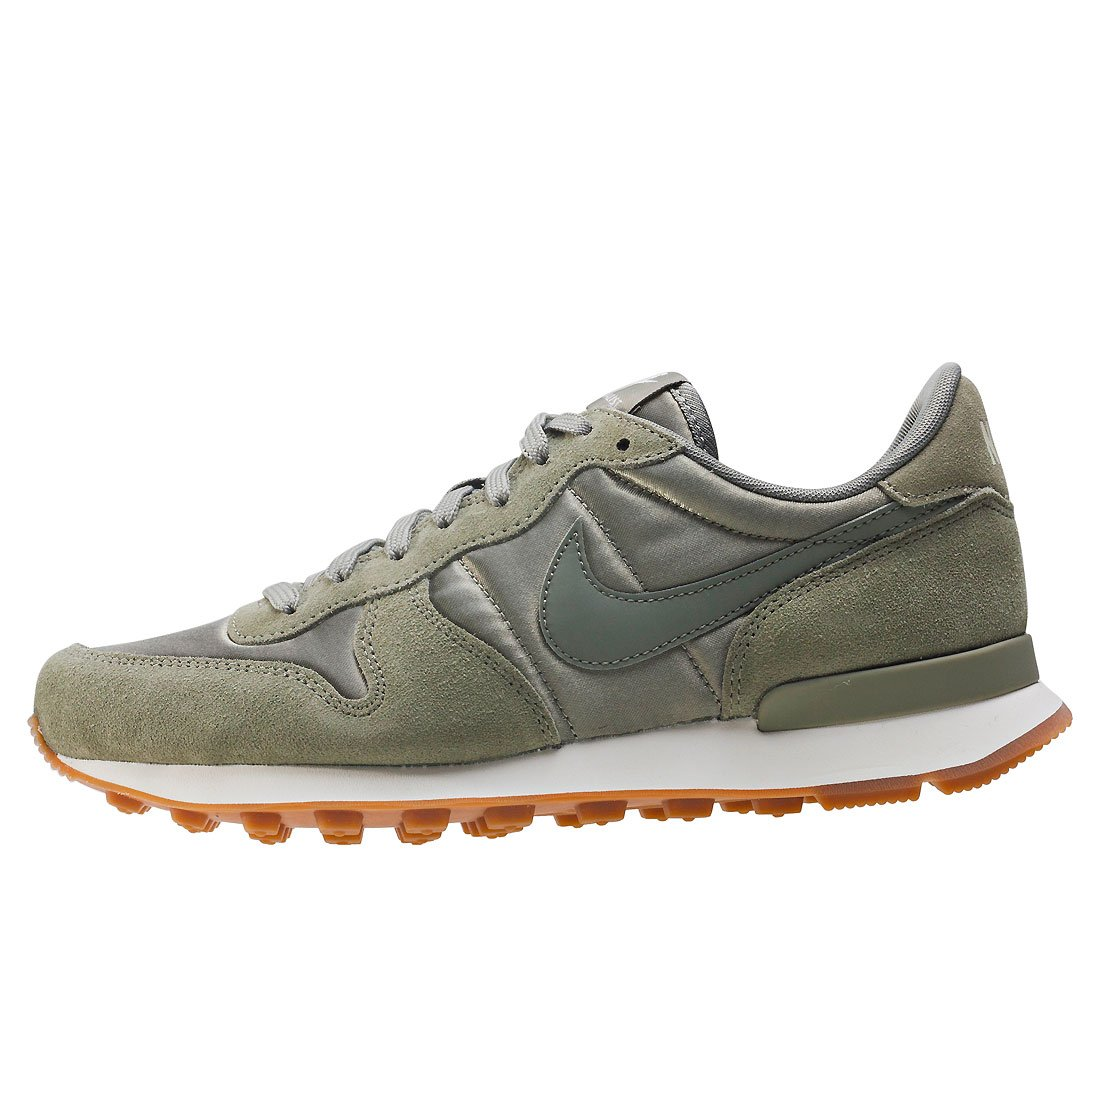 Nike WMNS Internationalist beige - 9.5/41: Amazon.de: Sport & Freizeit